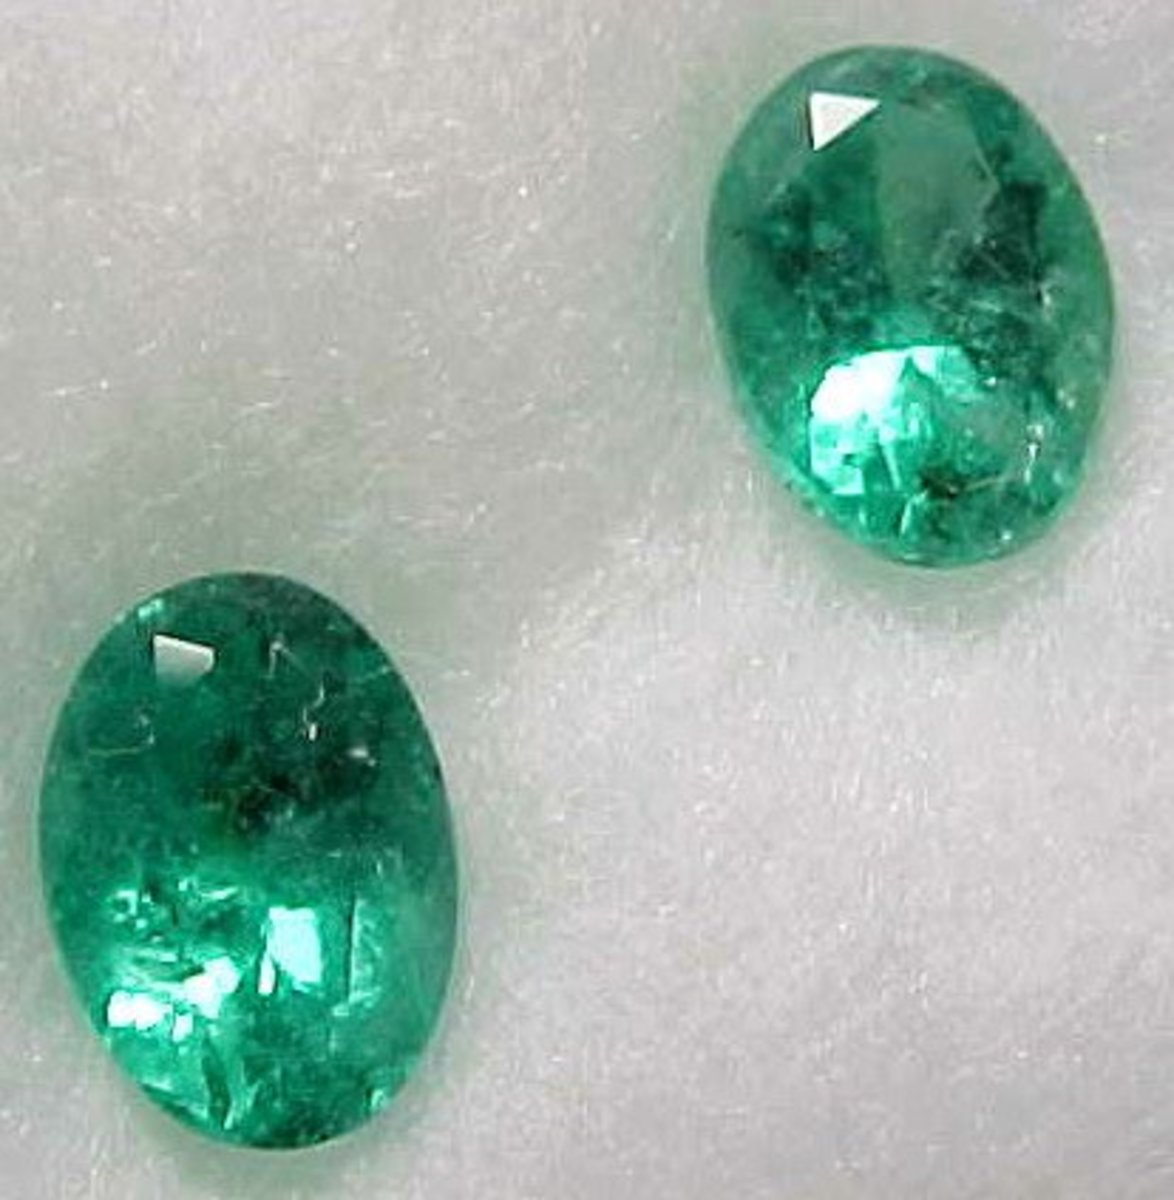 How to Determine if an Emerald is Real or Synthetic